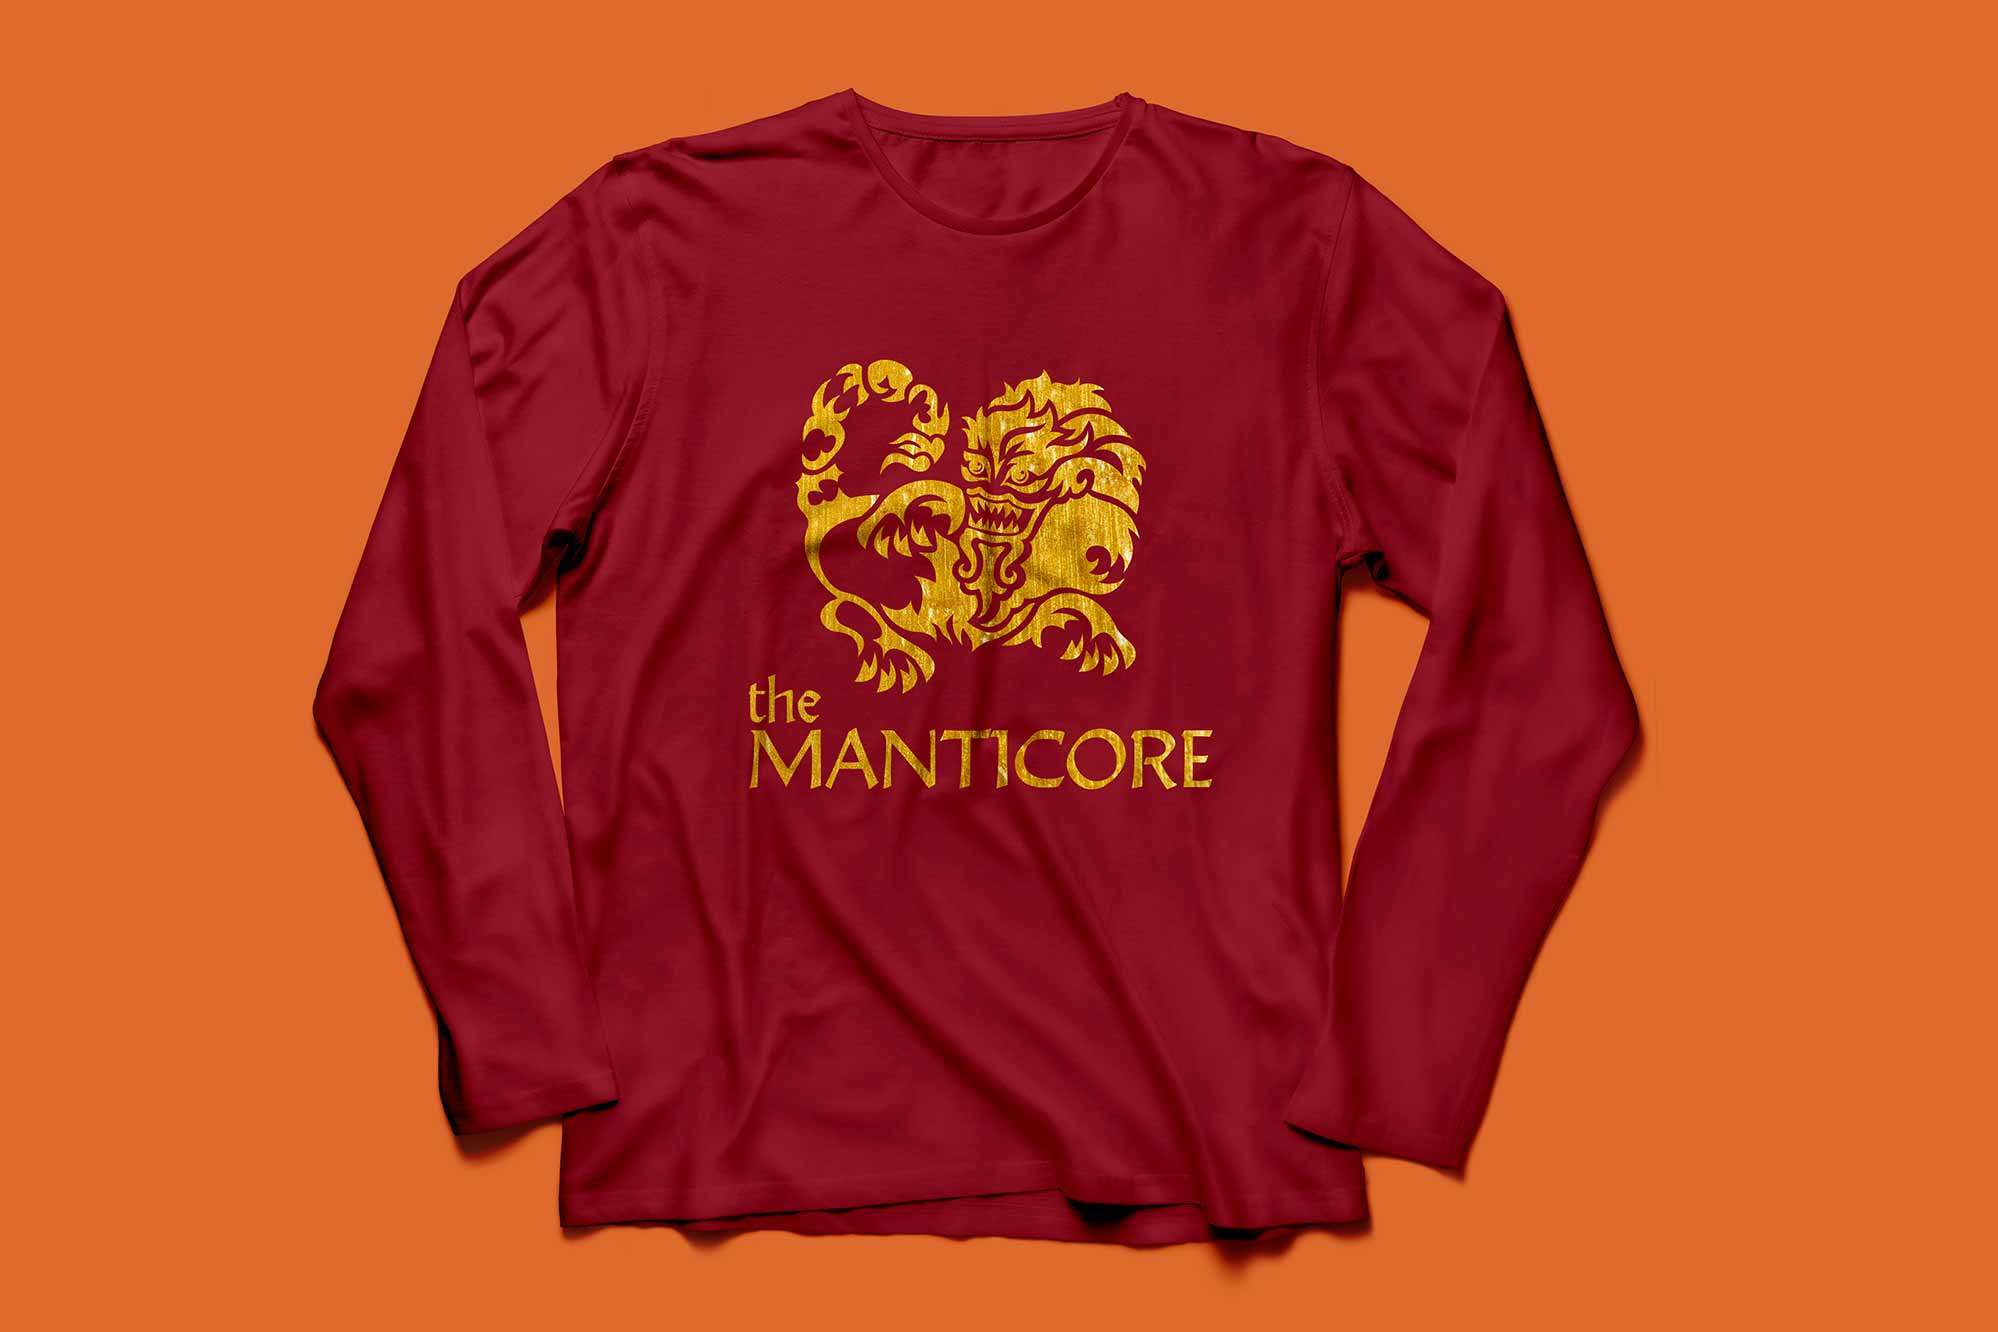 An image of a shirt with the created manticore symbol.